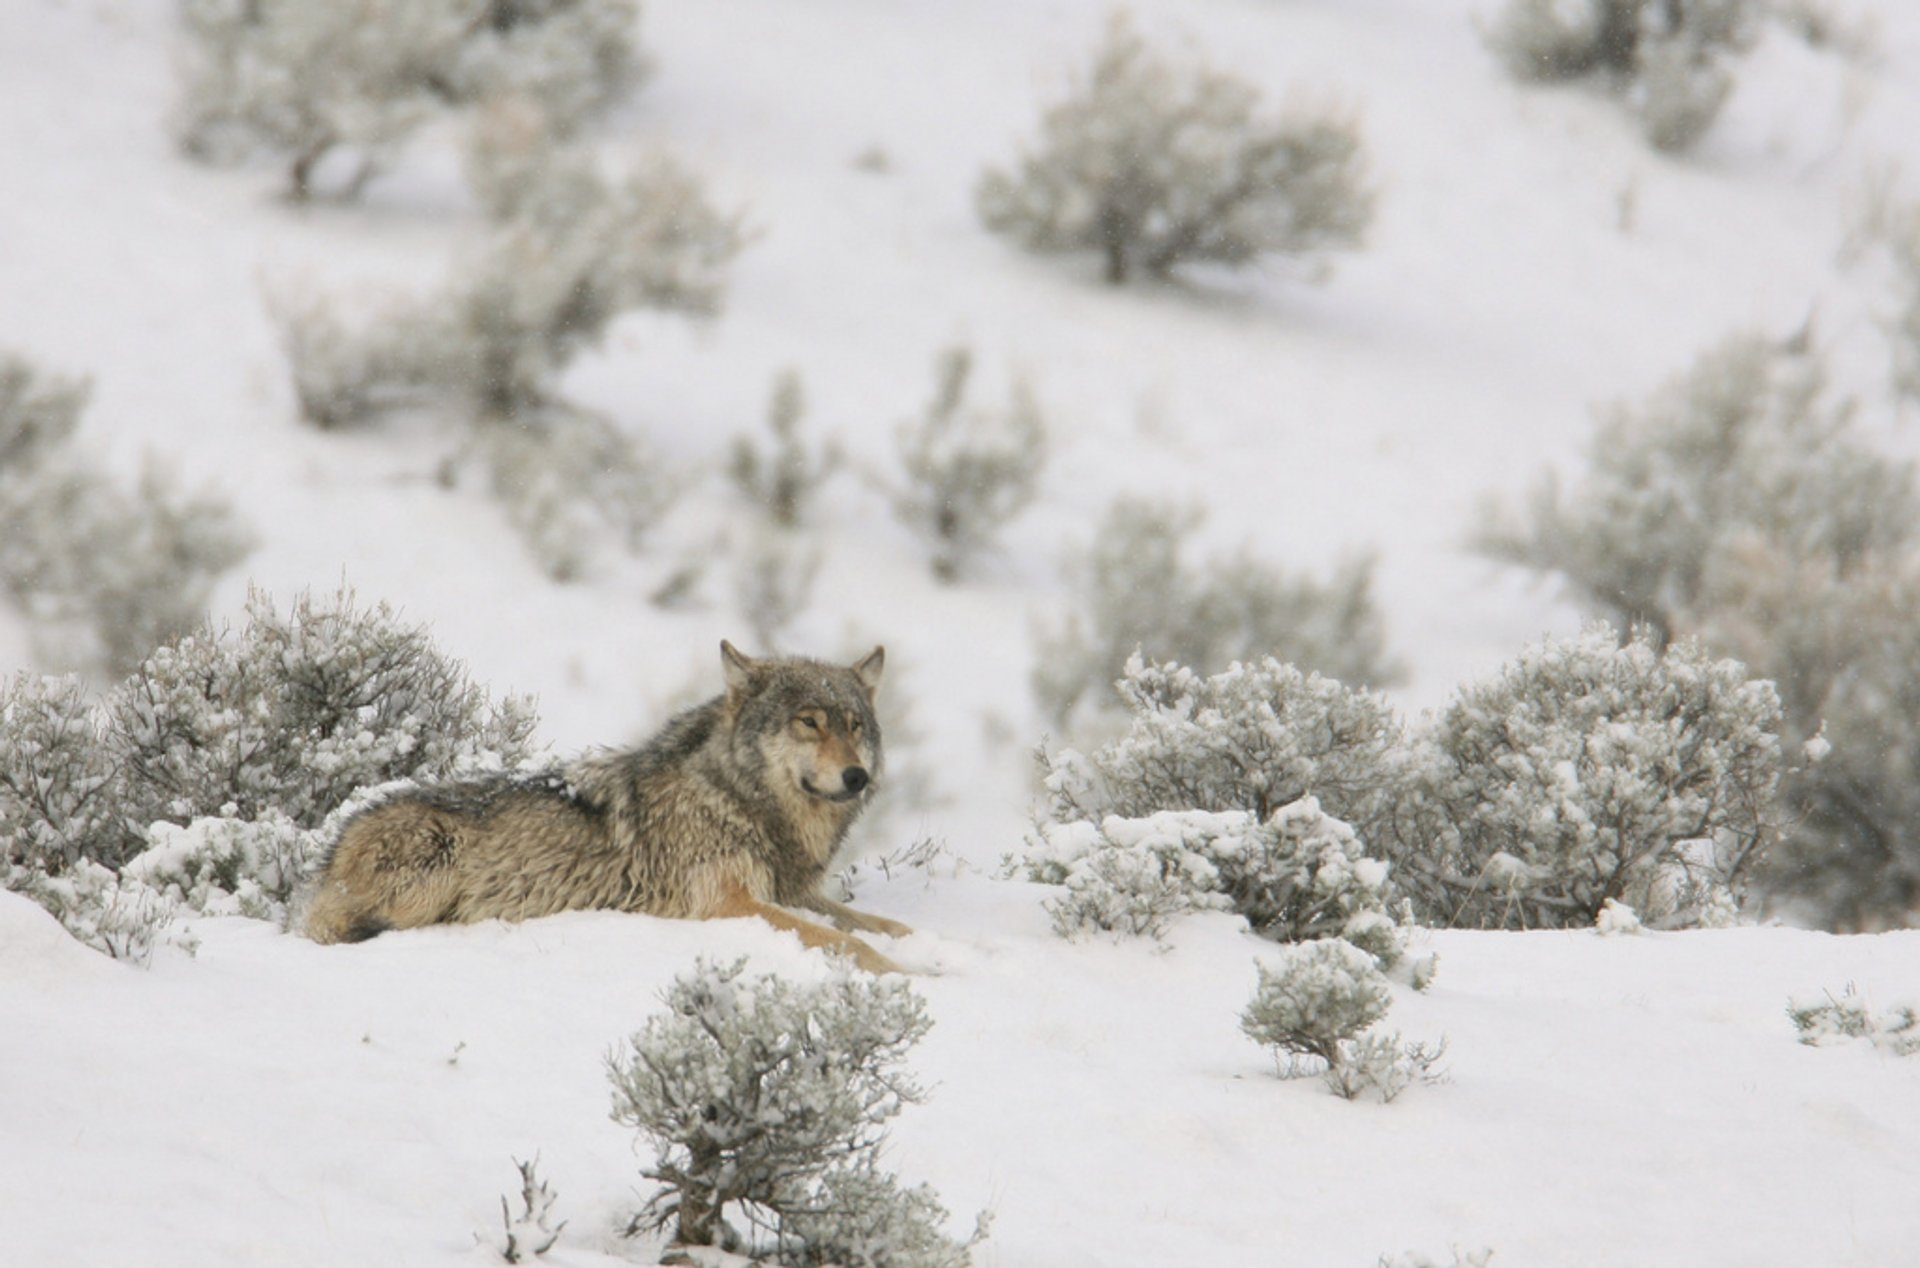 Wolves in Yellowstone National Park - Best Season 2020